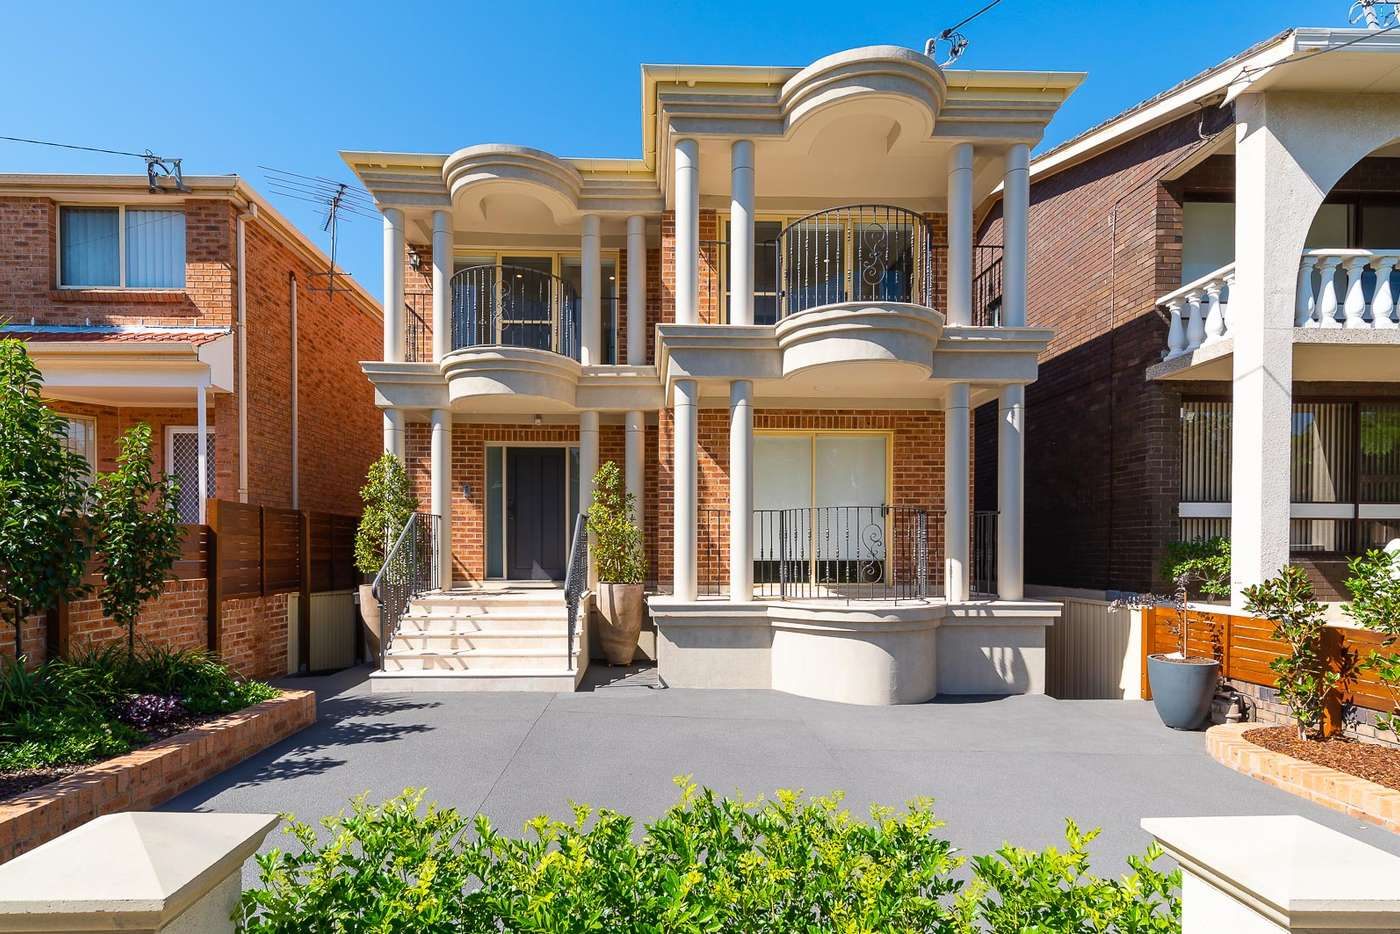 Main view of Homely house listing, 82 Moreton Street, Lakemba NSW 2195